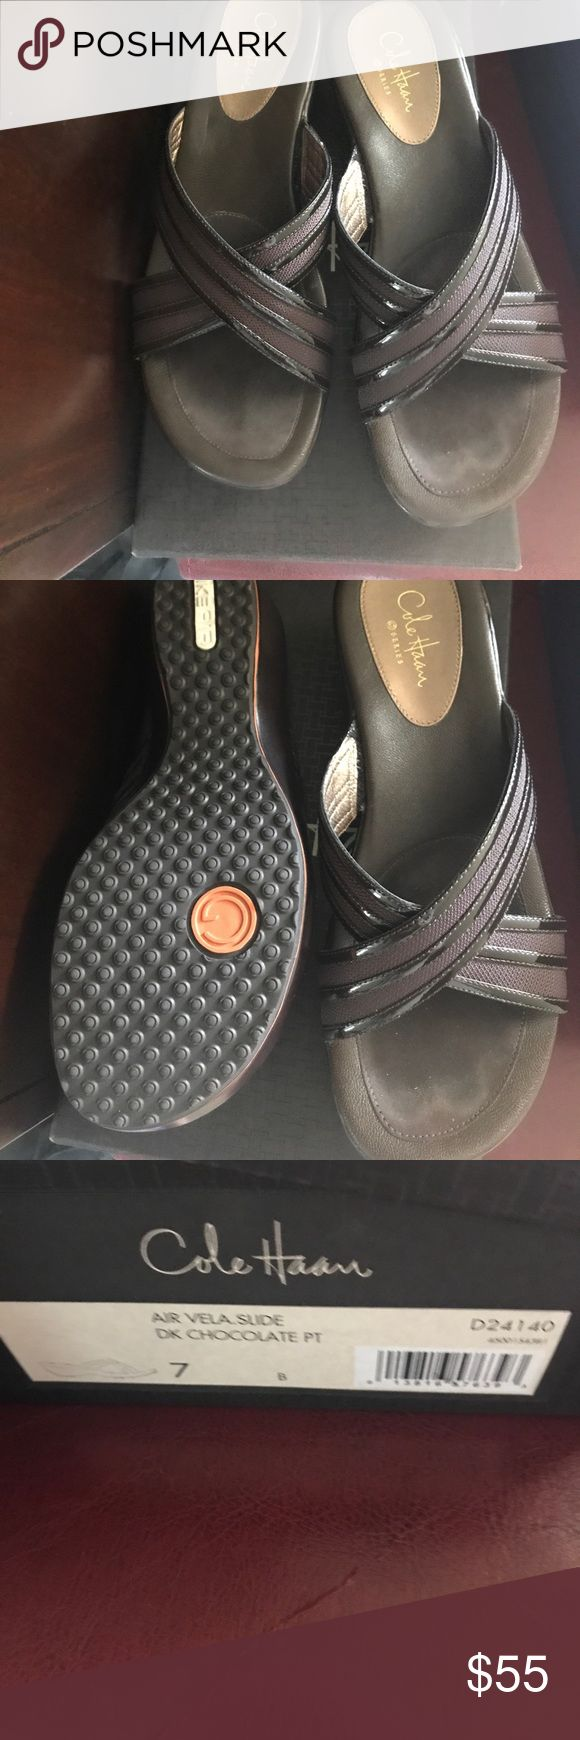 Cole Haan Nike Air slide sandal EUC and worn once Cole Haan Nike Air slide sandal in chocolate brown. Cole Haan Shoes